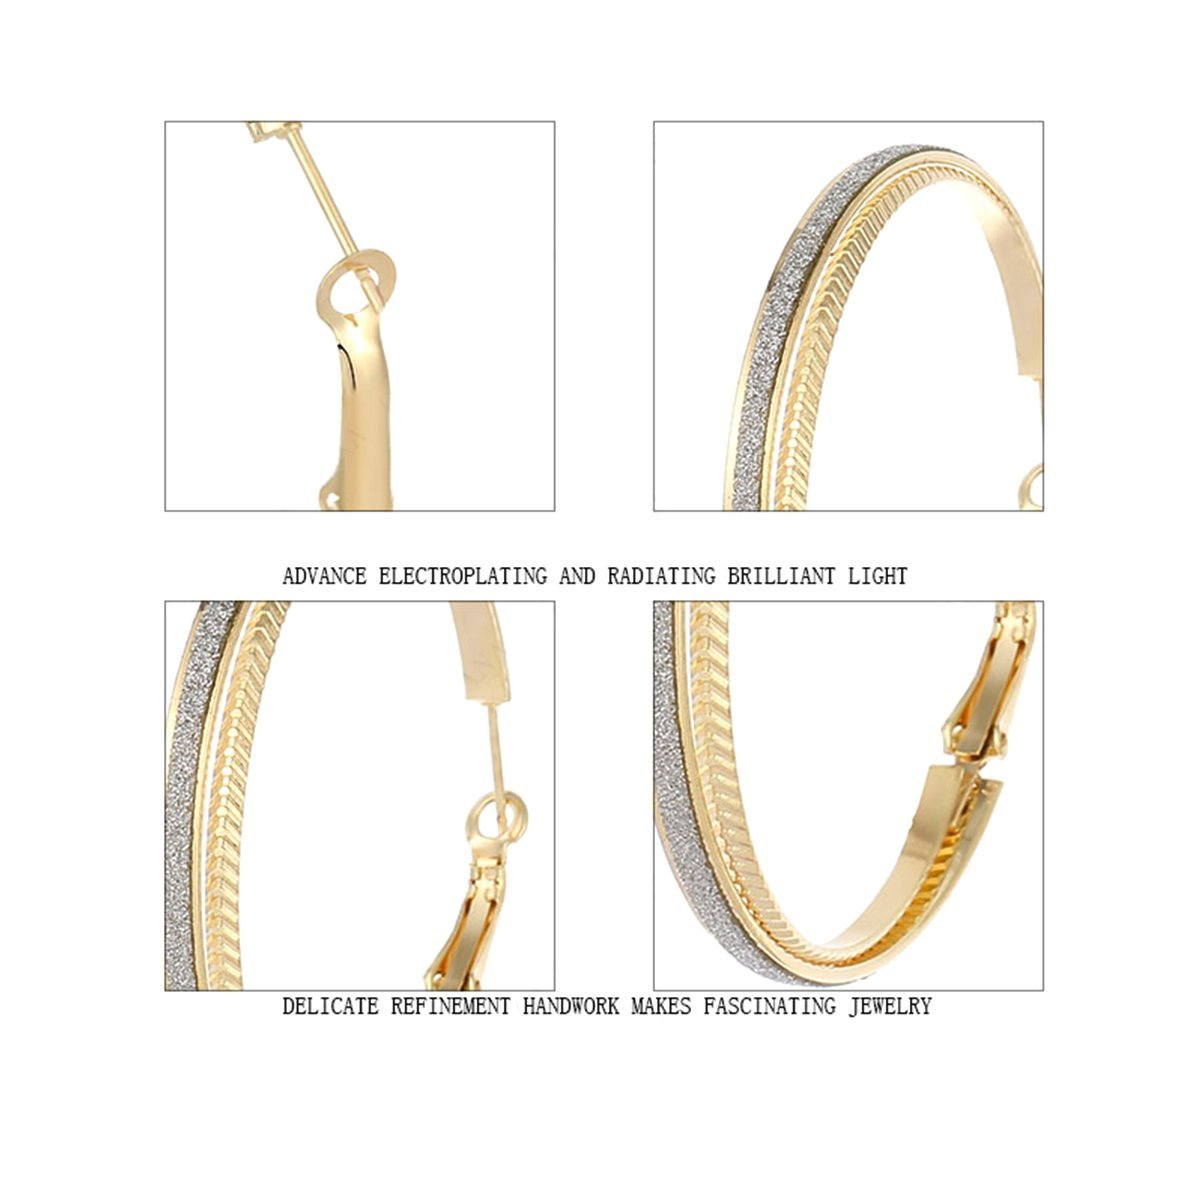 x 0.27 Clicktop Findings IDB Sparkling Hoop Earrings 7mm 50mm Available in Silver Gold Tones 1.96